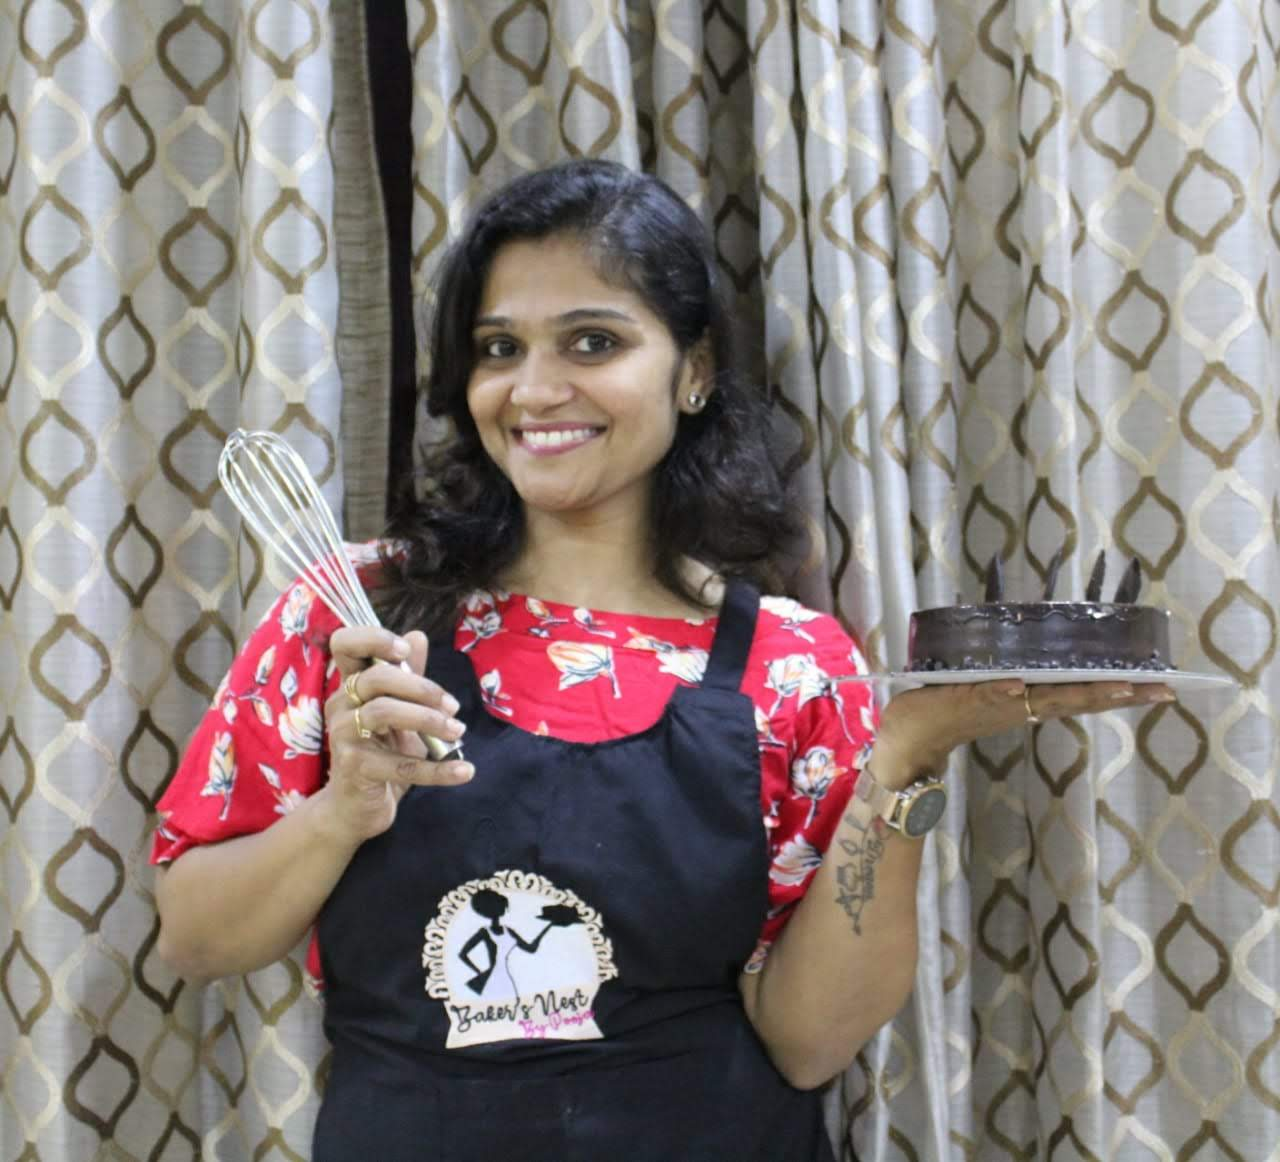 Here Is The Talented Home Baker Who Turned Her Passion Into A Thriving Profession